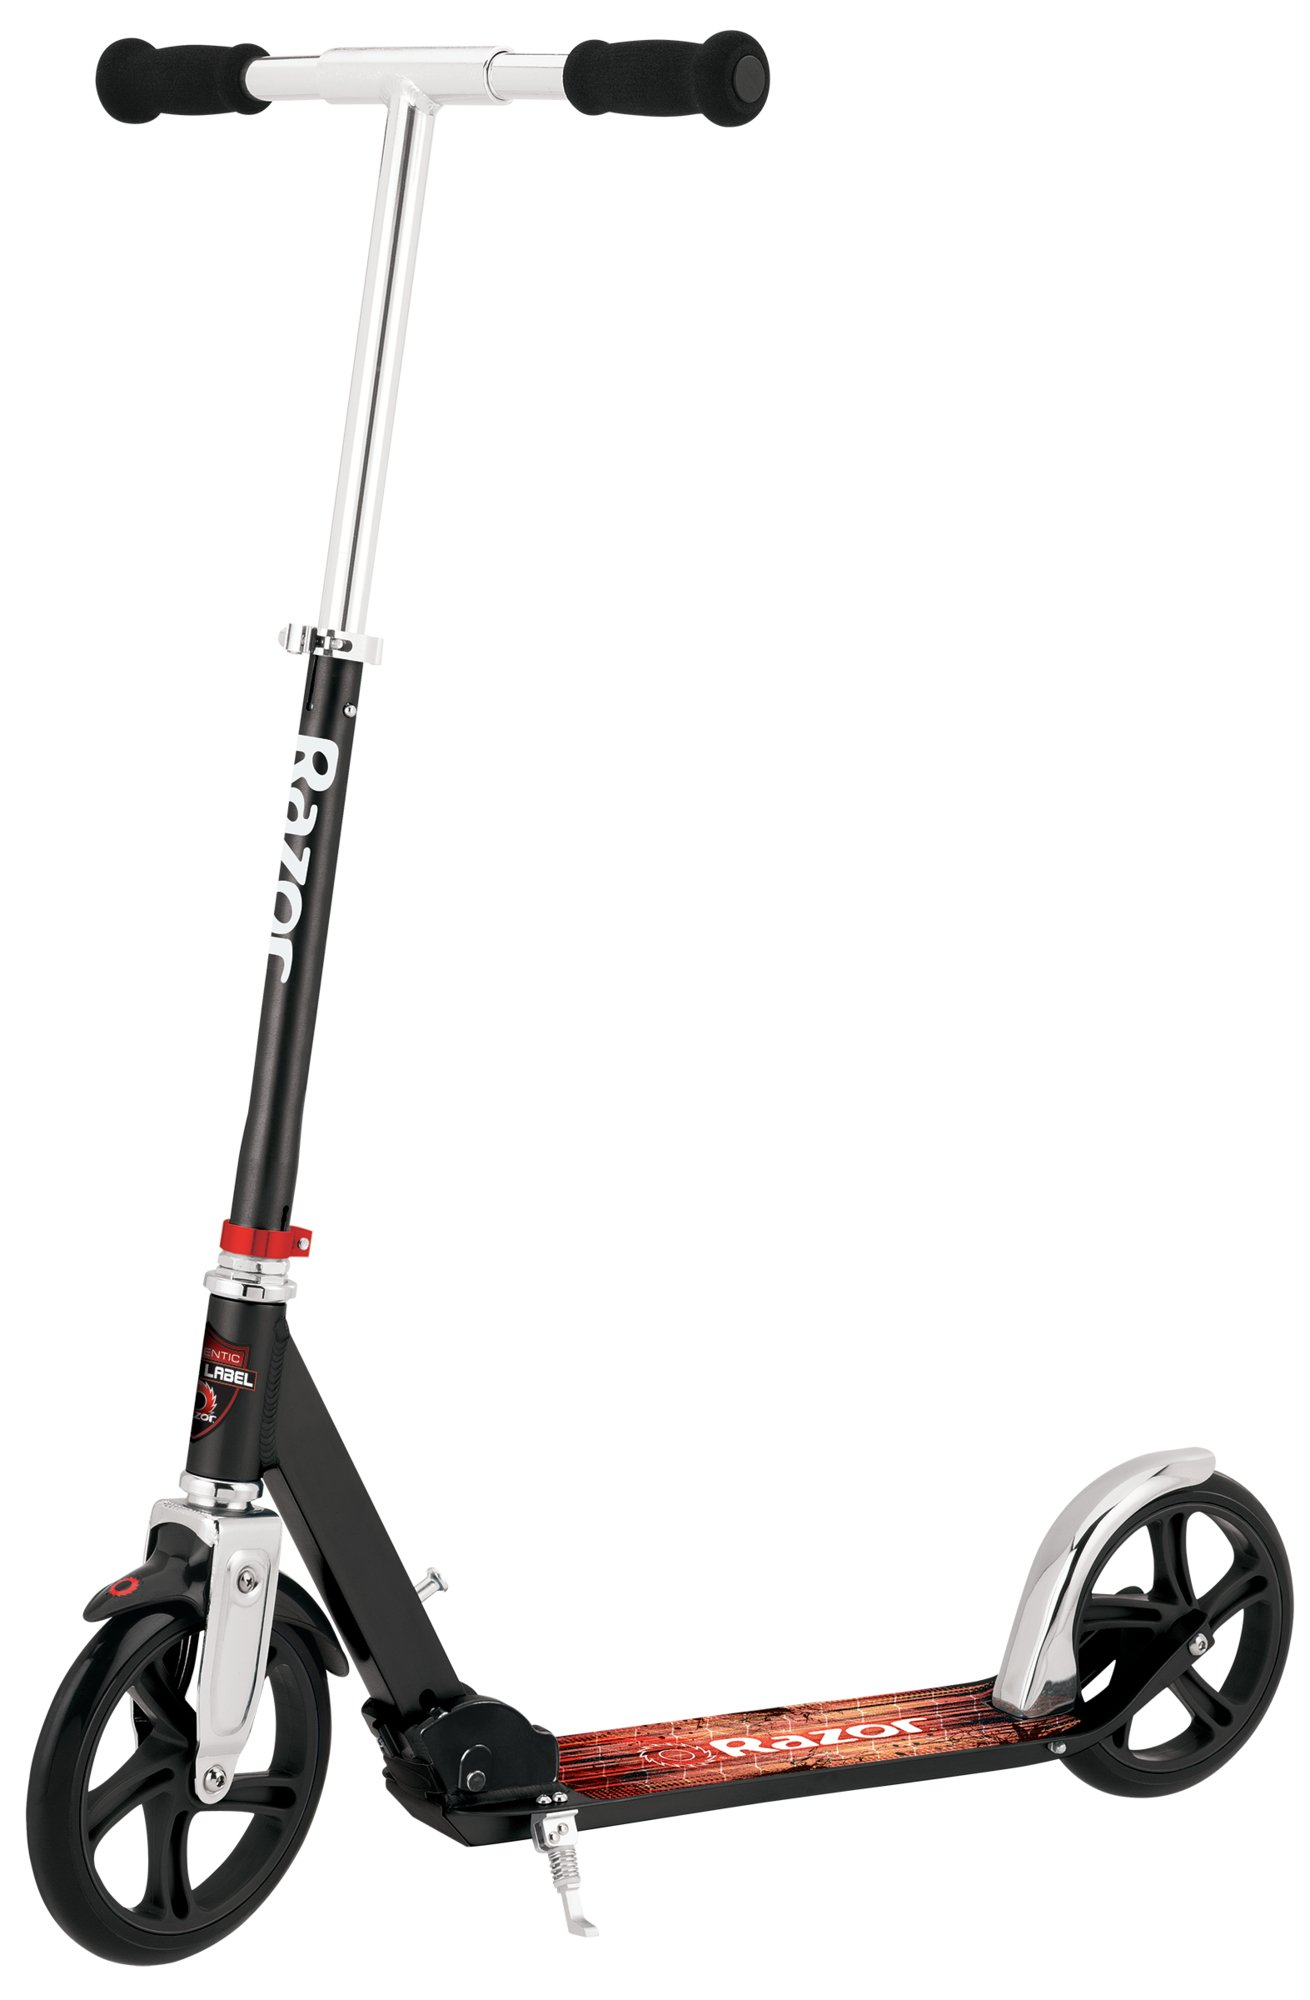 """Razor A5 Lux Kick Scooter - Large 8"""" Wheels, Foldable, Adjustable Handlebars, Lightweight, for Riders up to 220 lbs"""